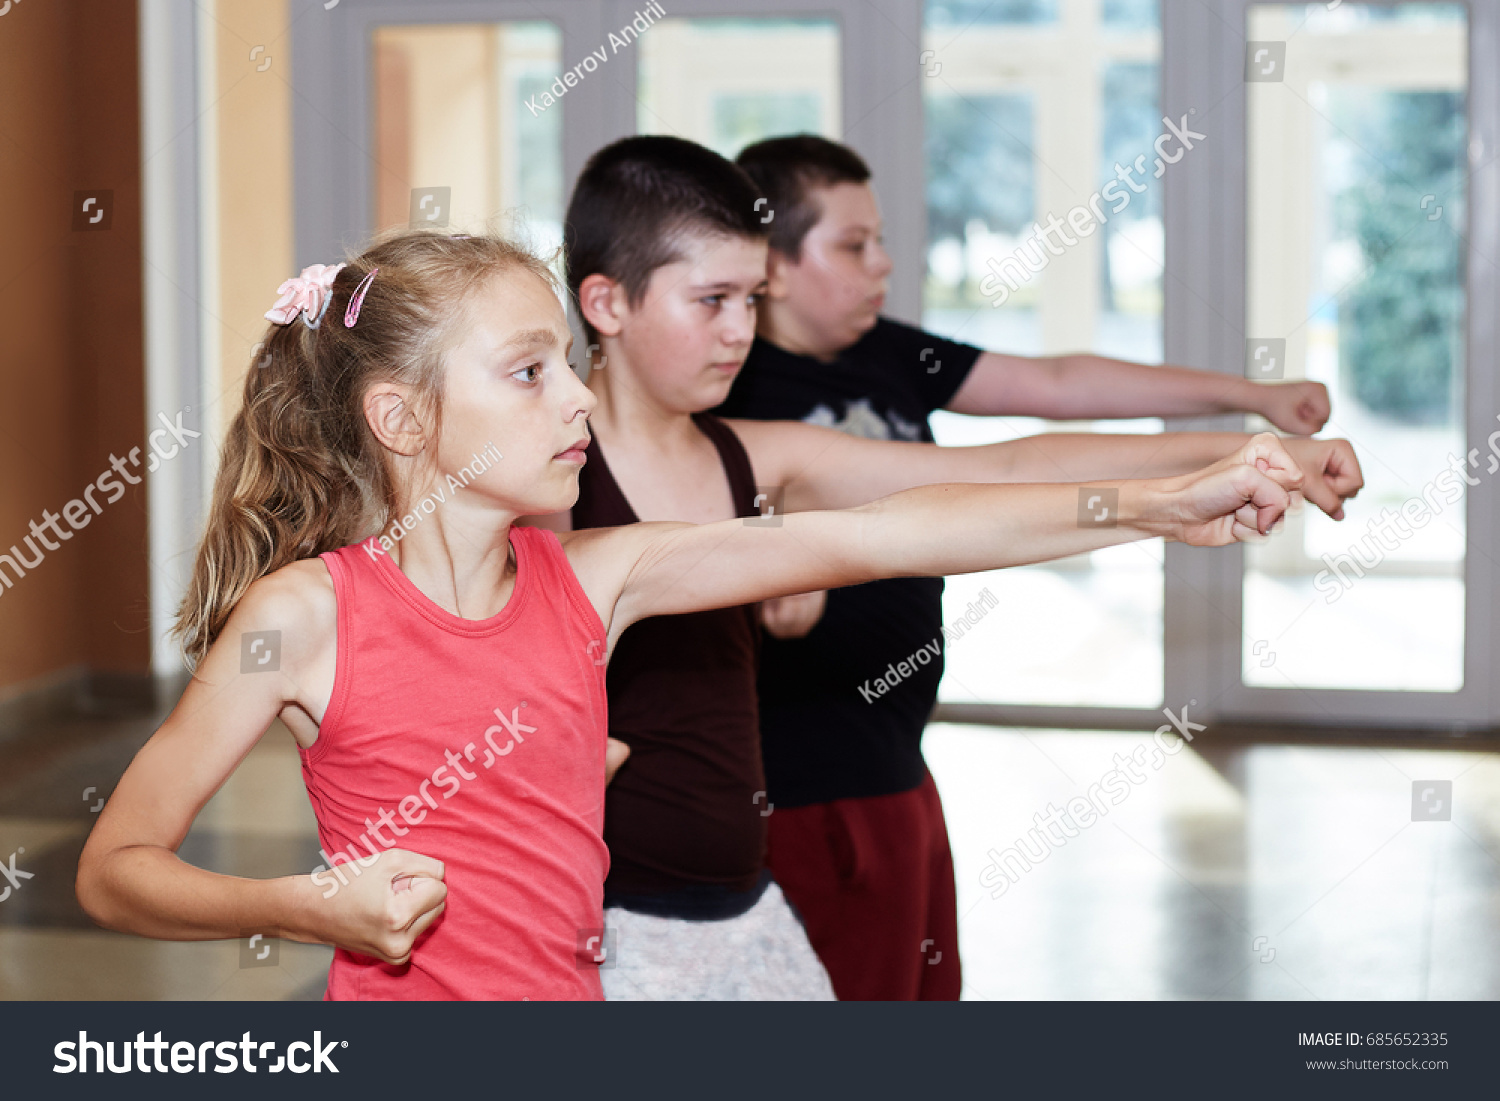 Children are training punch the hand #685652335